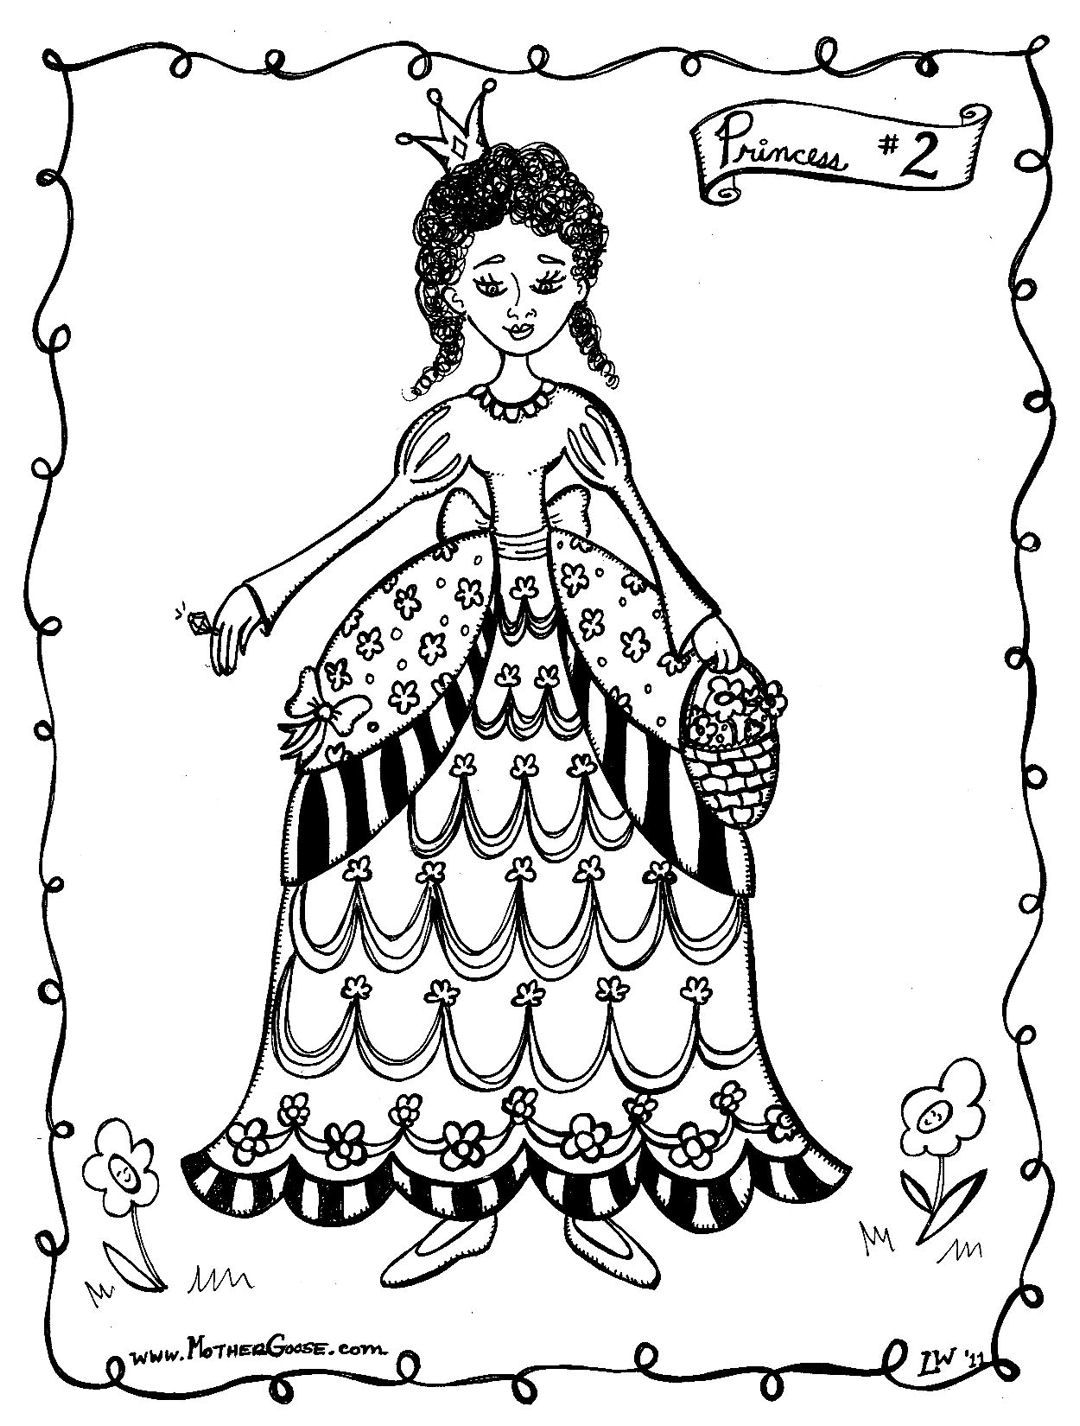 Flower Princess Coloring Pages